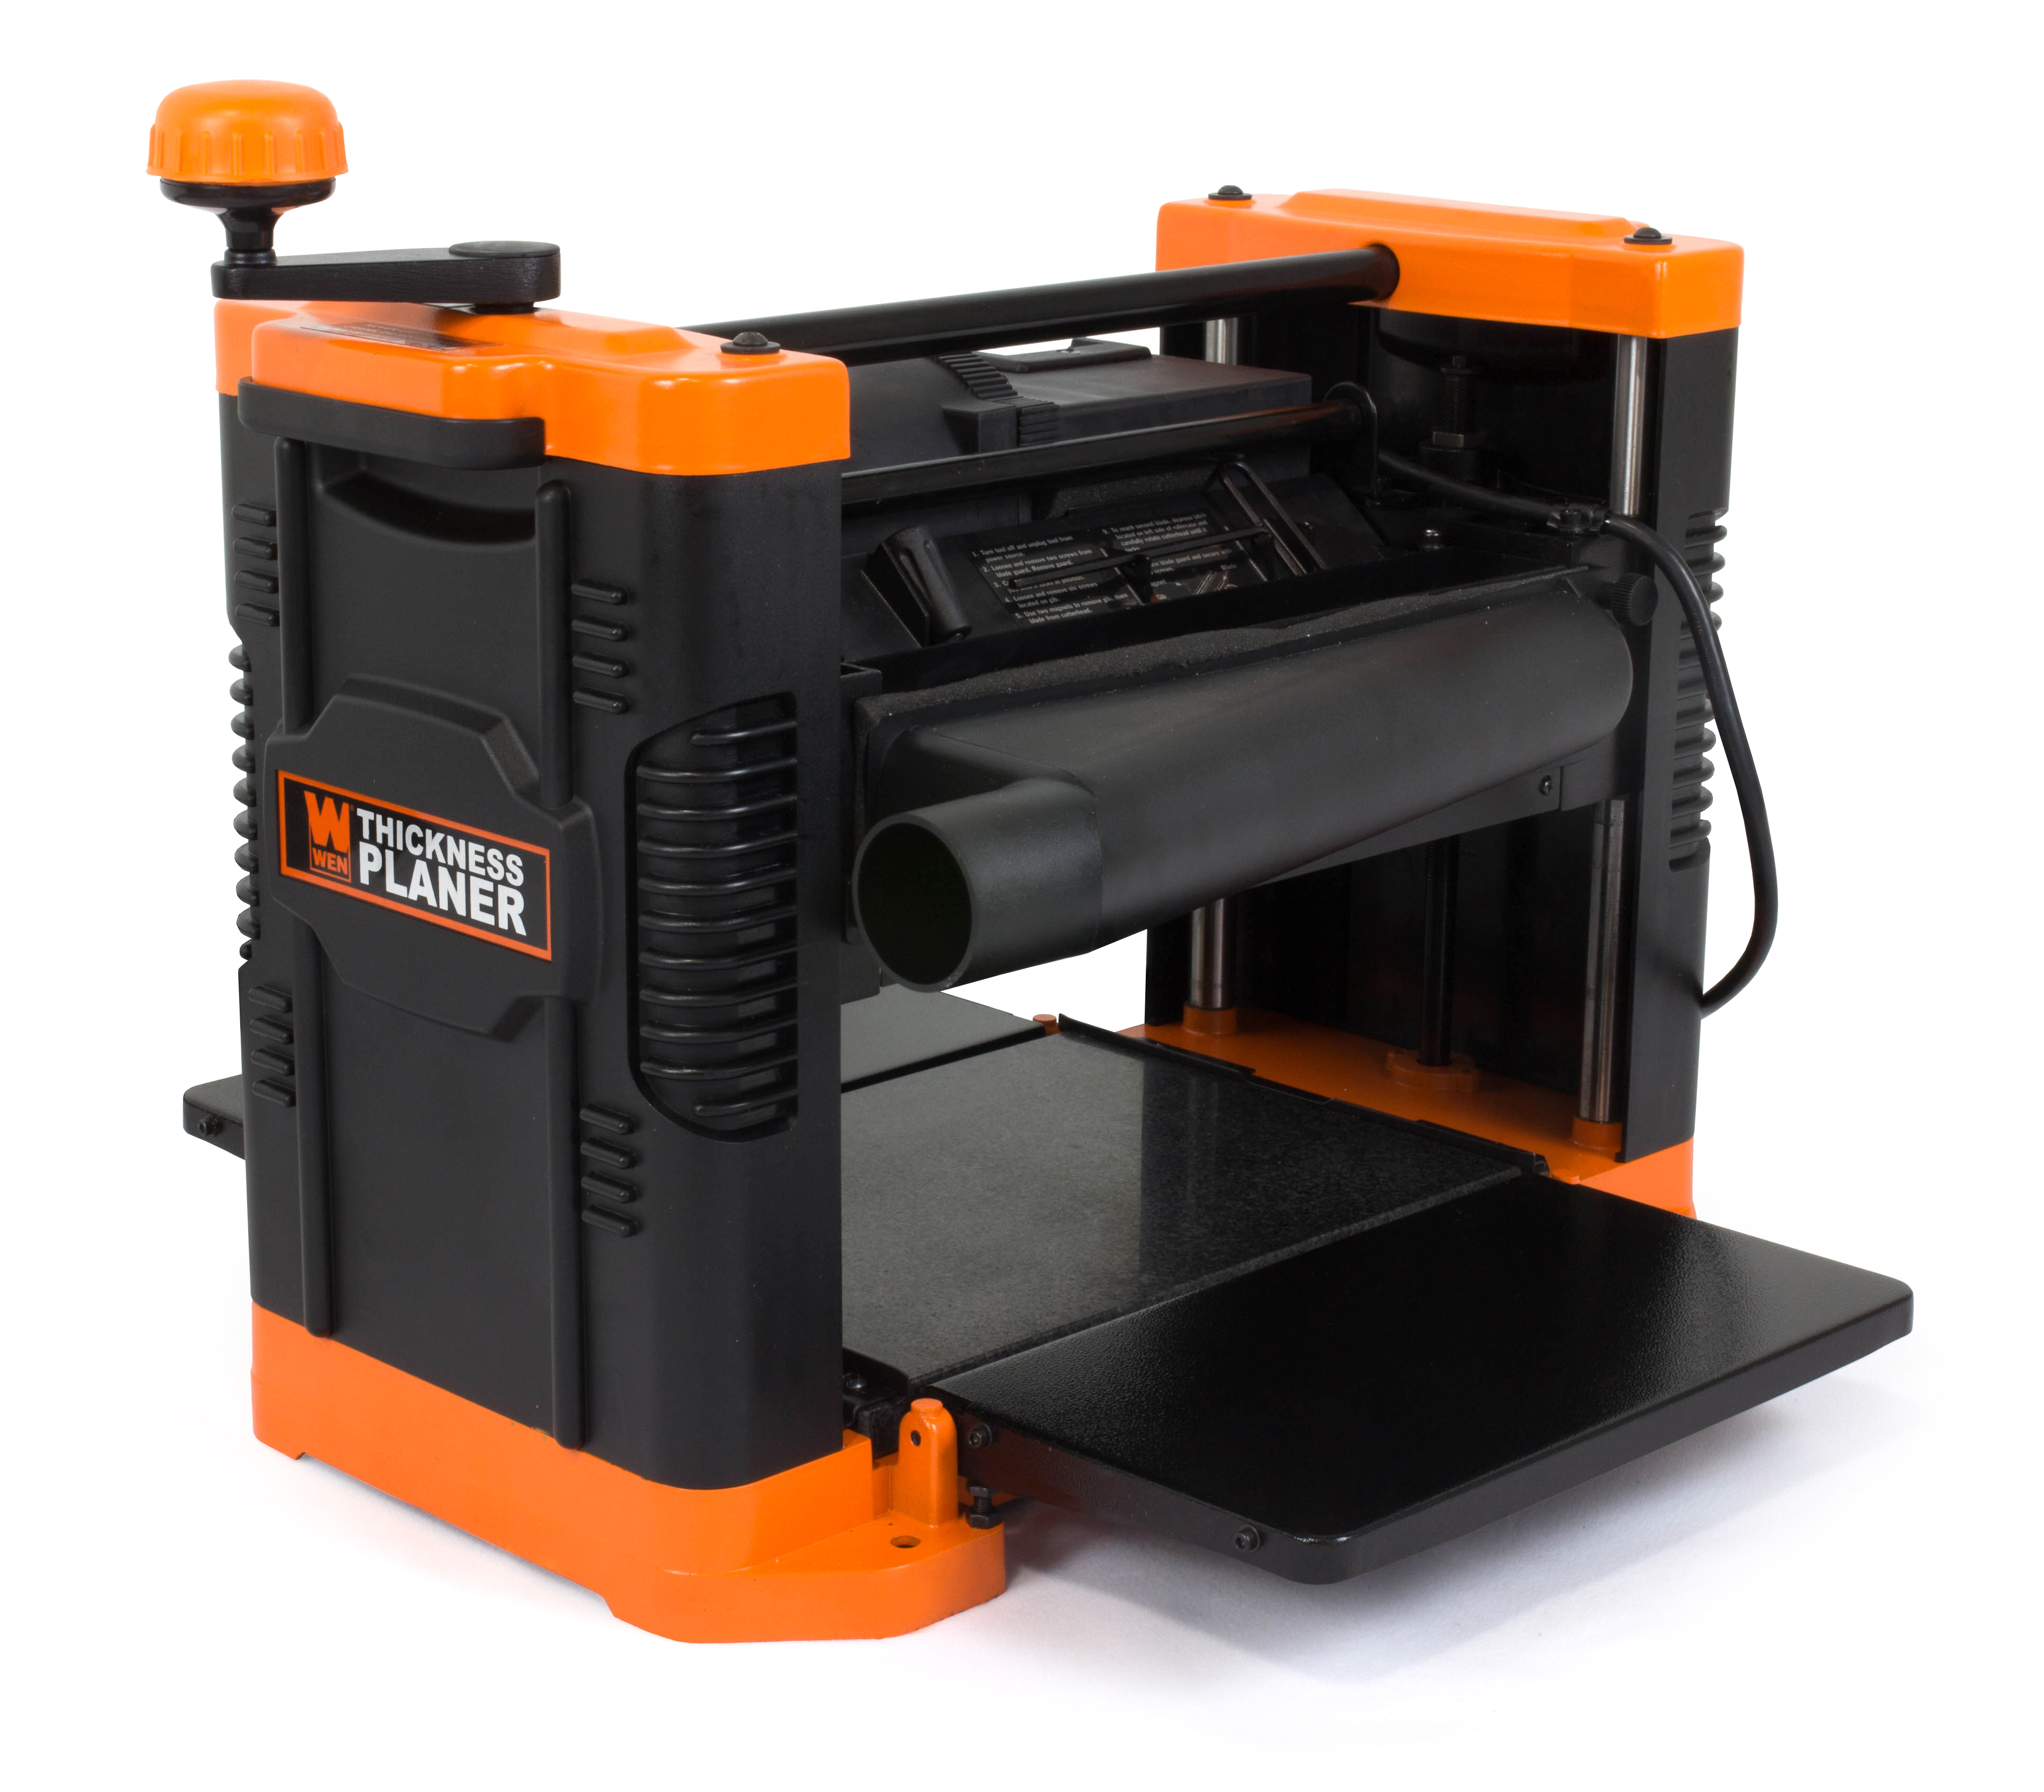 Wen 12.5-inch Benchtop Thickness Planer with Granite Table